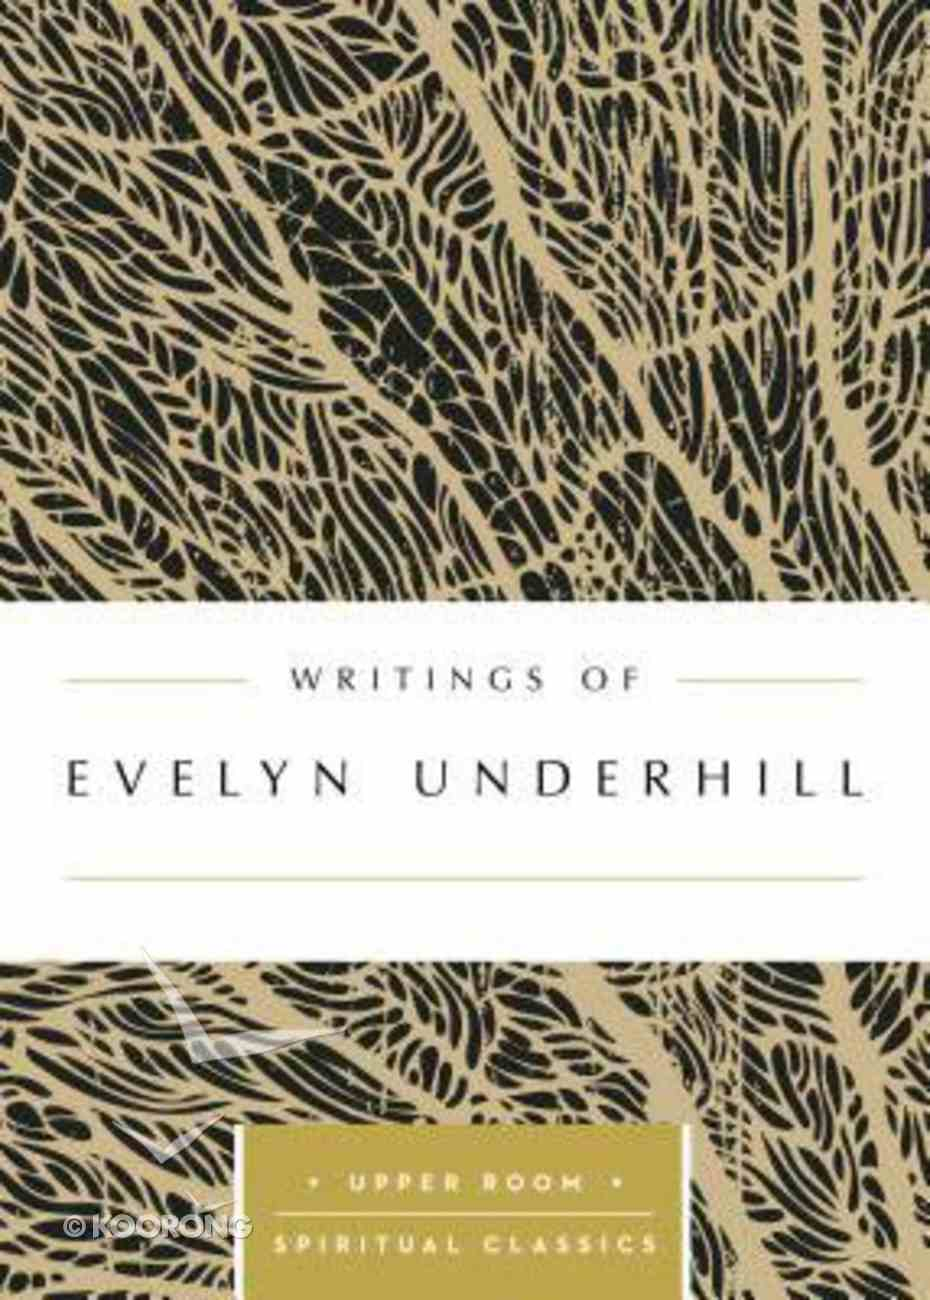 Writings of Evelyn Underhill (Upper Room Spiritual Classics Series) Paperback